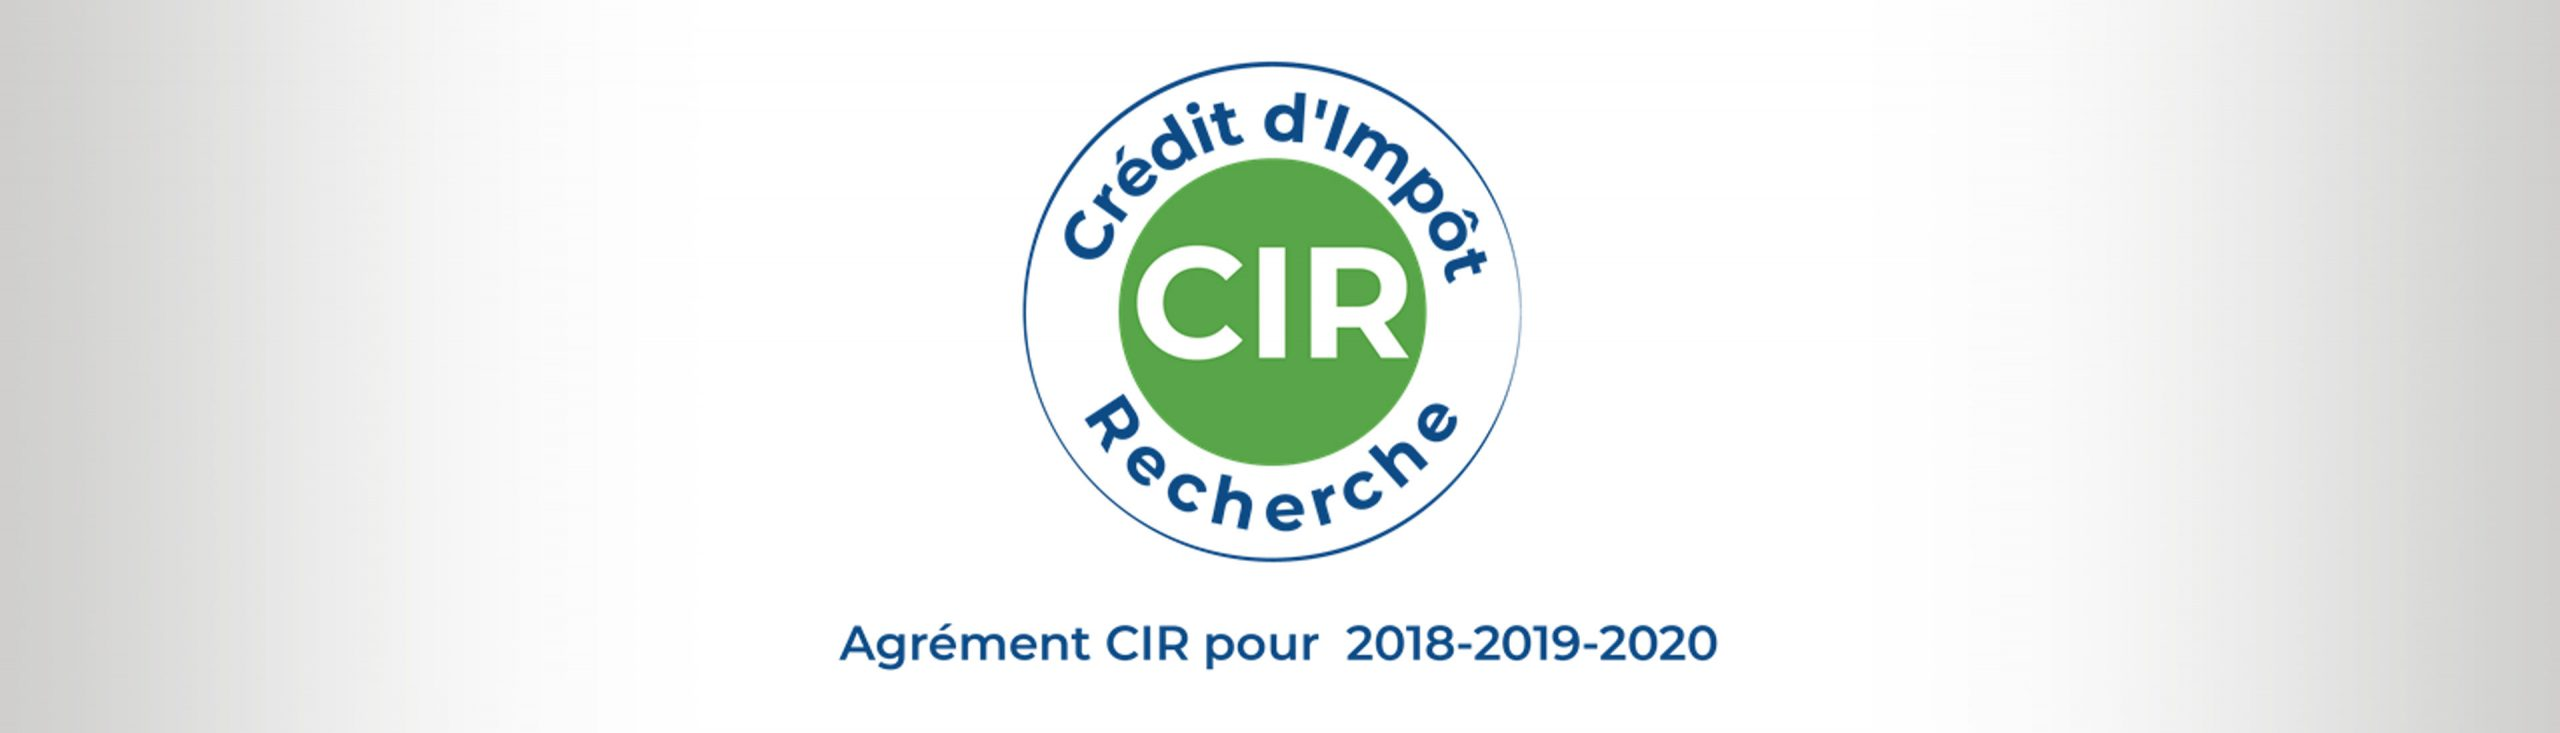 CIR accreditation after approval from the French Ministry of Higher Education, Research and Innovation